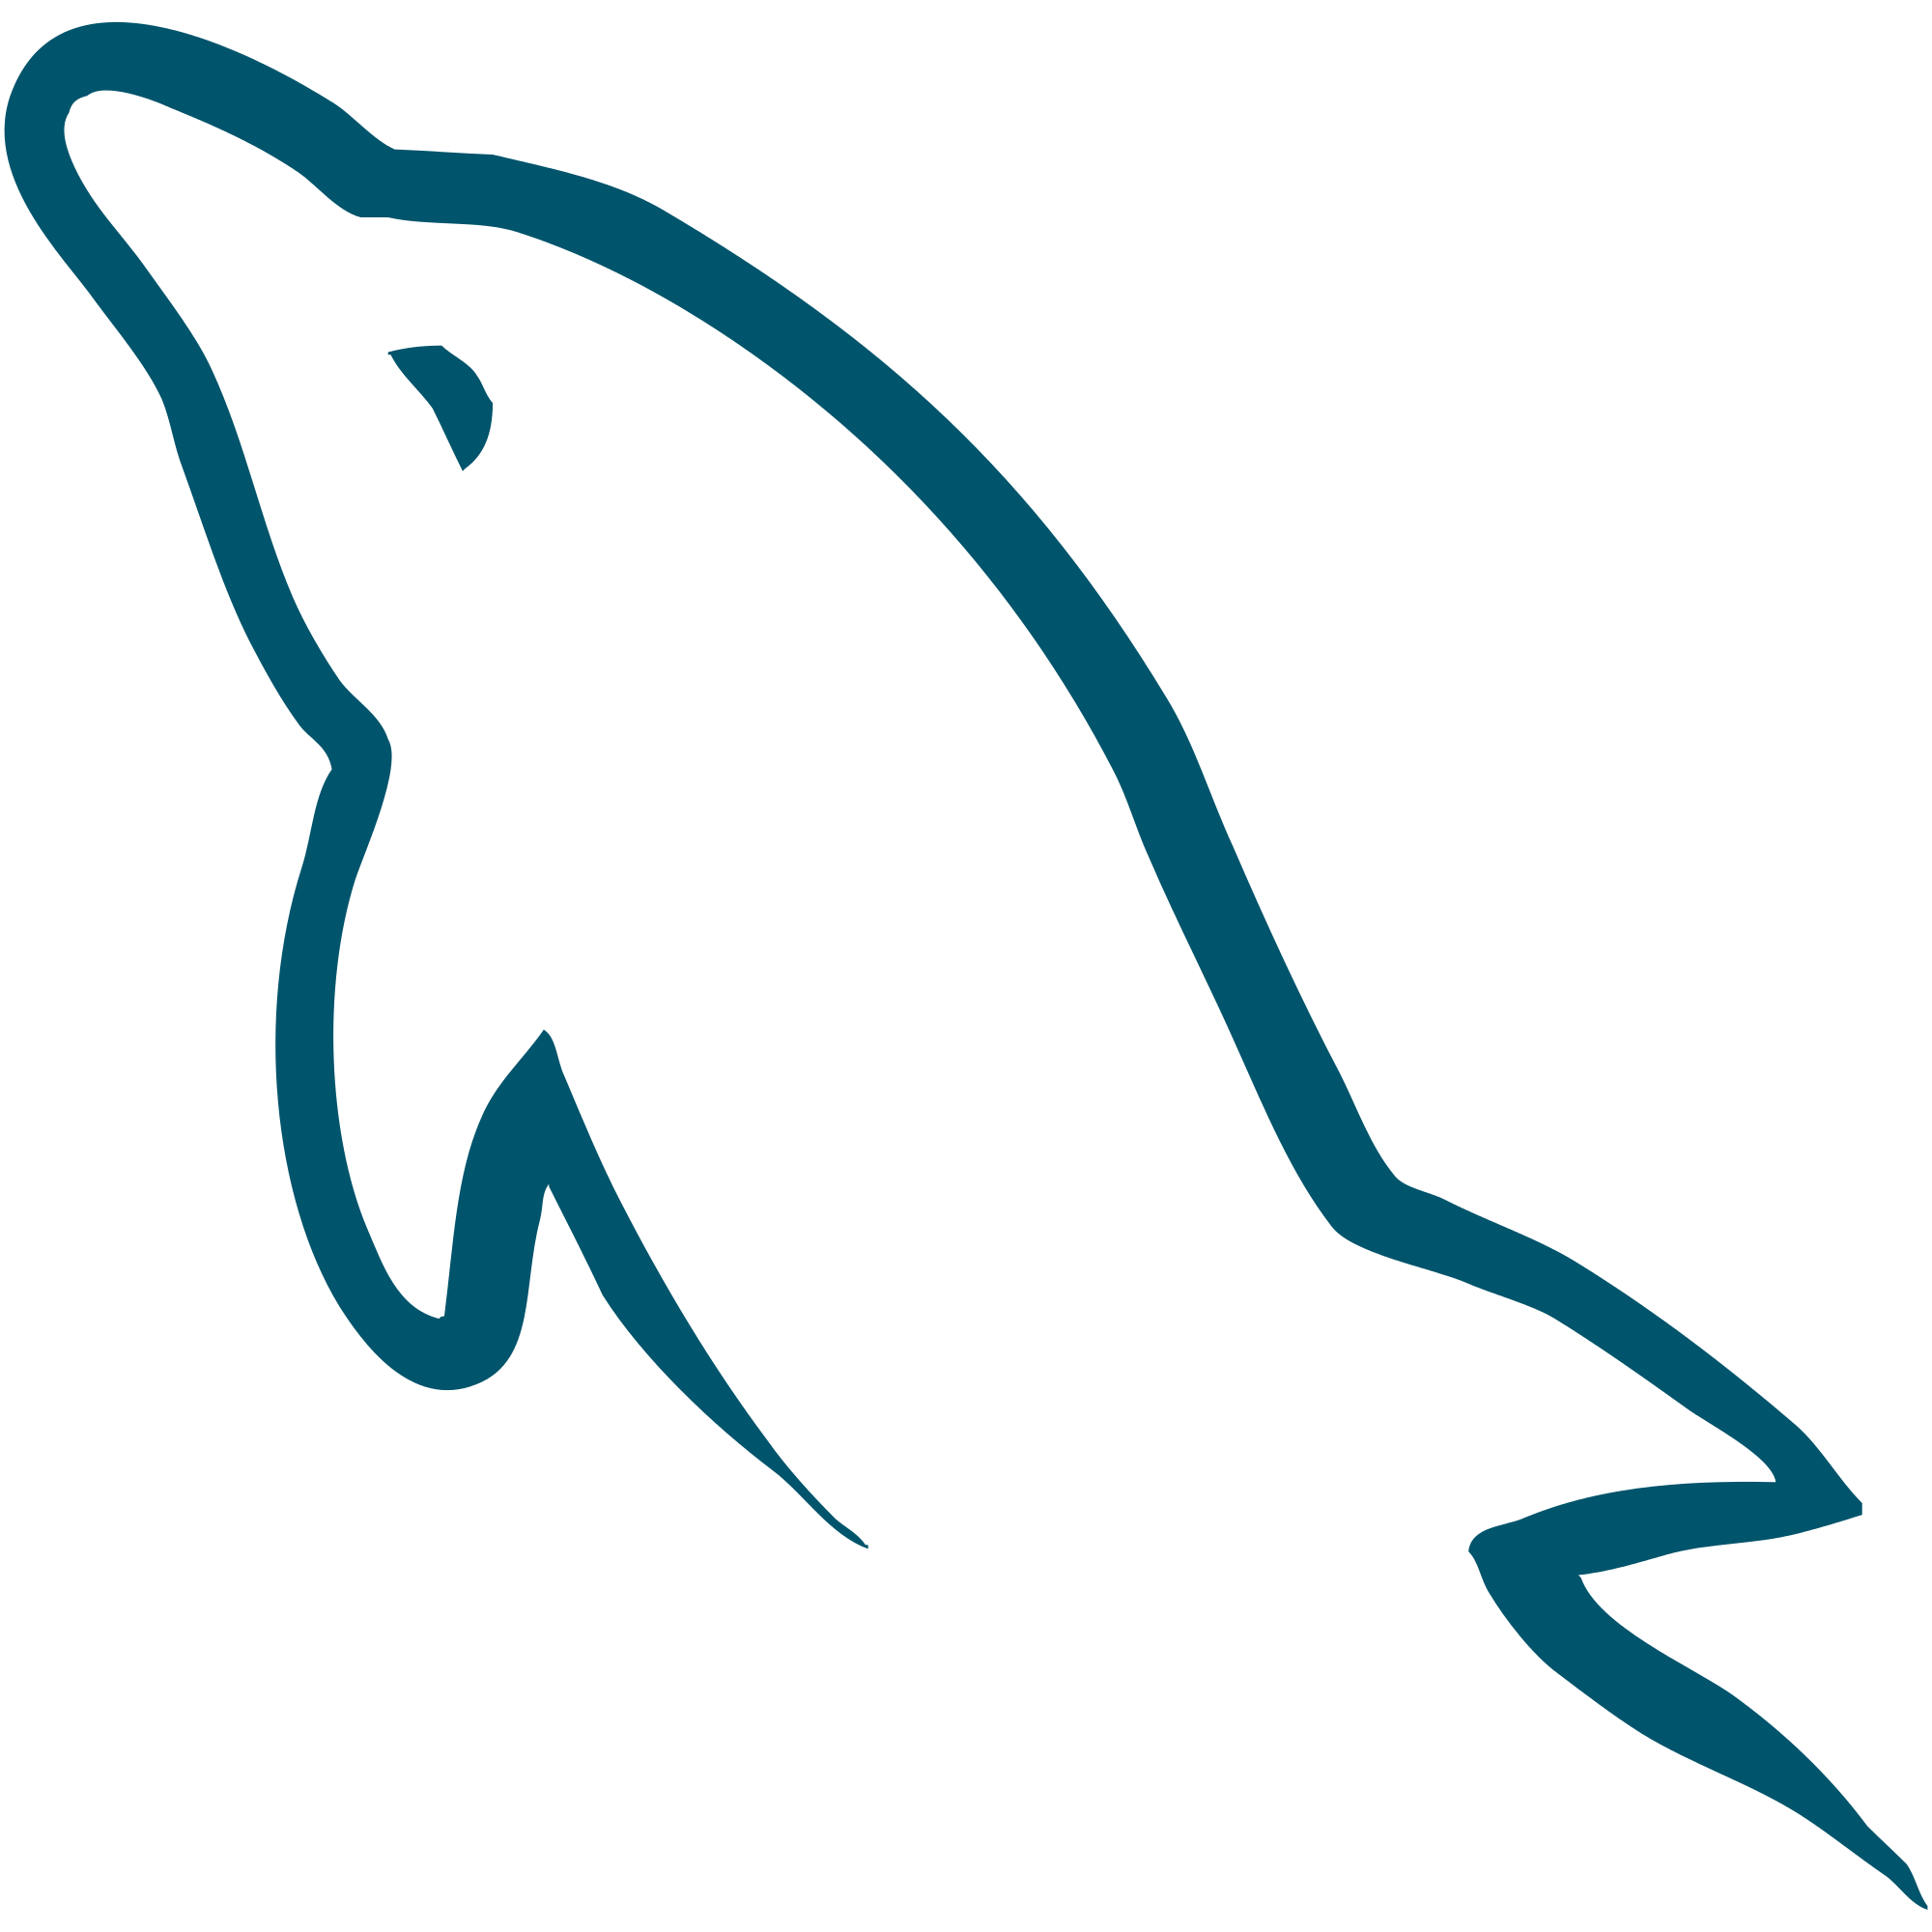 Dolphin svg #9, Download drawings